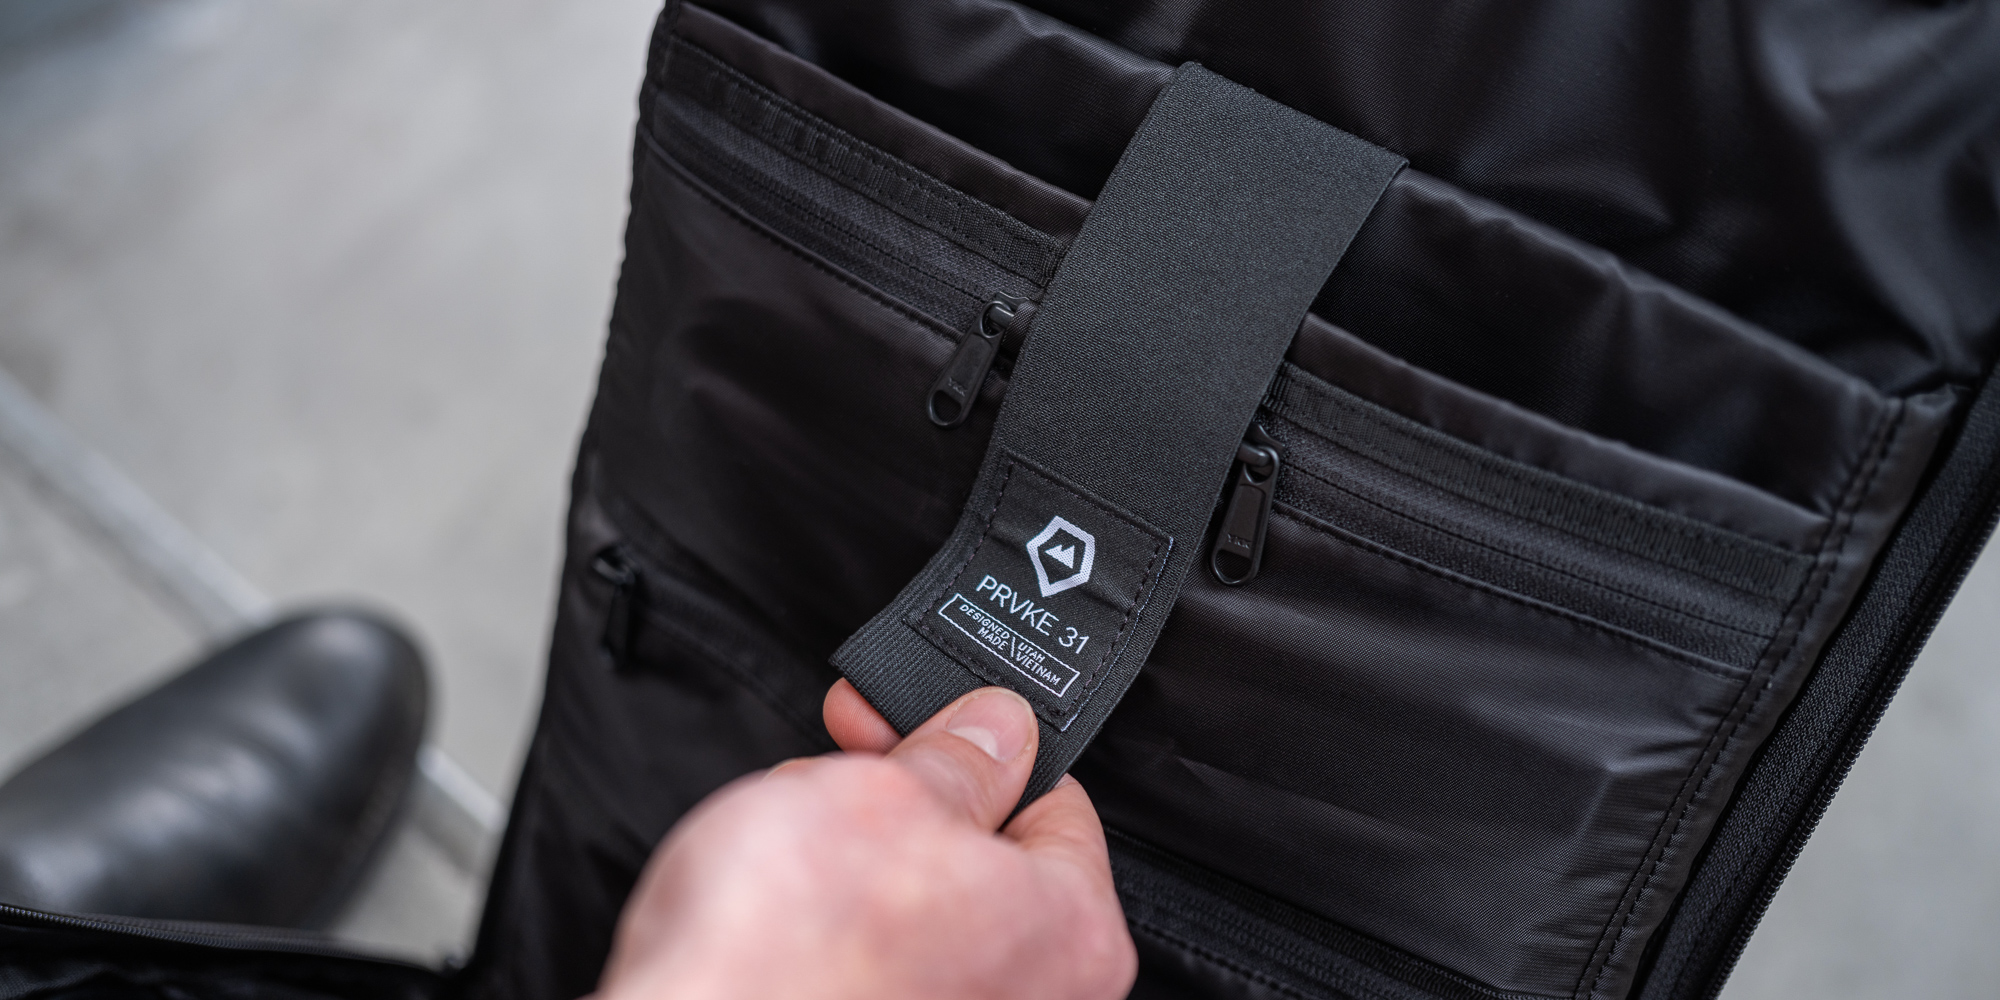 Wandrd All-new Prvke 41 Backpack - Tailored to Your Needs